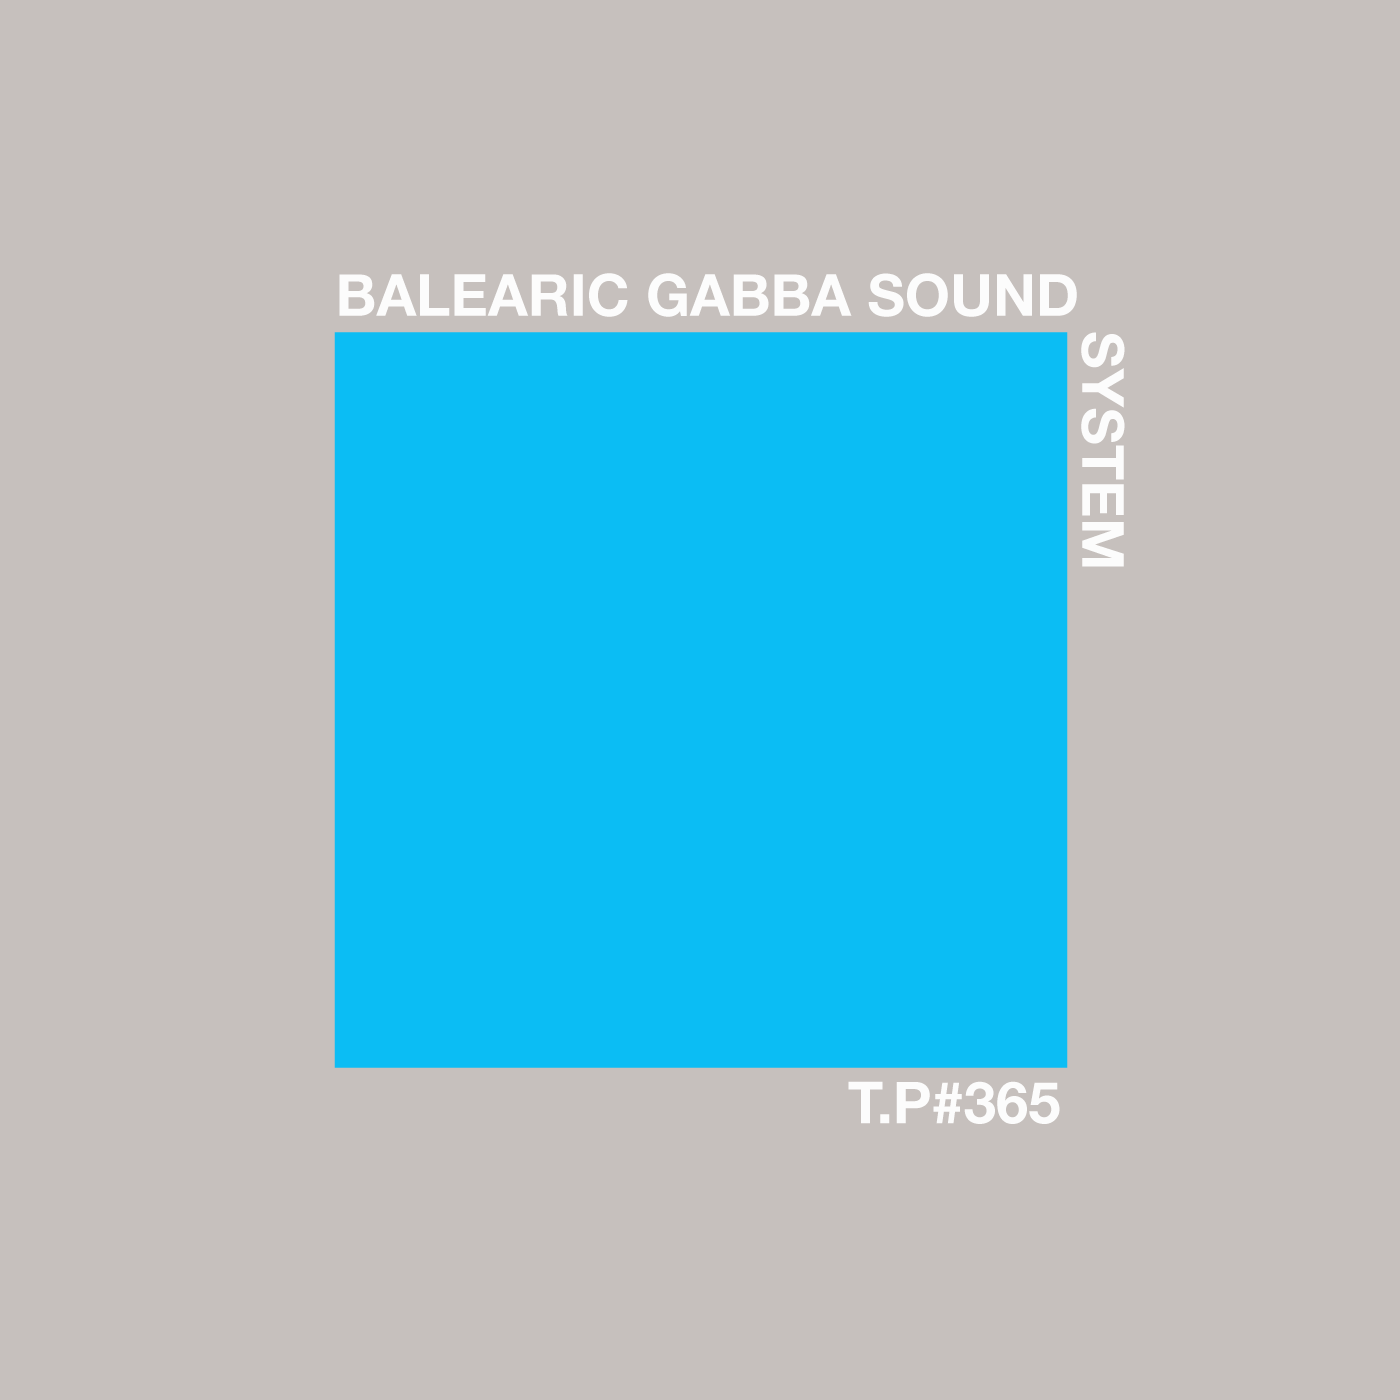 Marco Gallerani, Enzo Elia, Test Pressing, Mixes, Dr Rob, Balearic Gabba Sound System, Hell Yeah!,